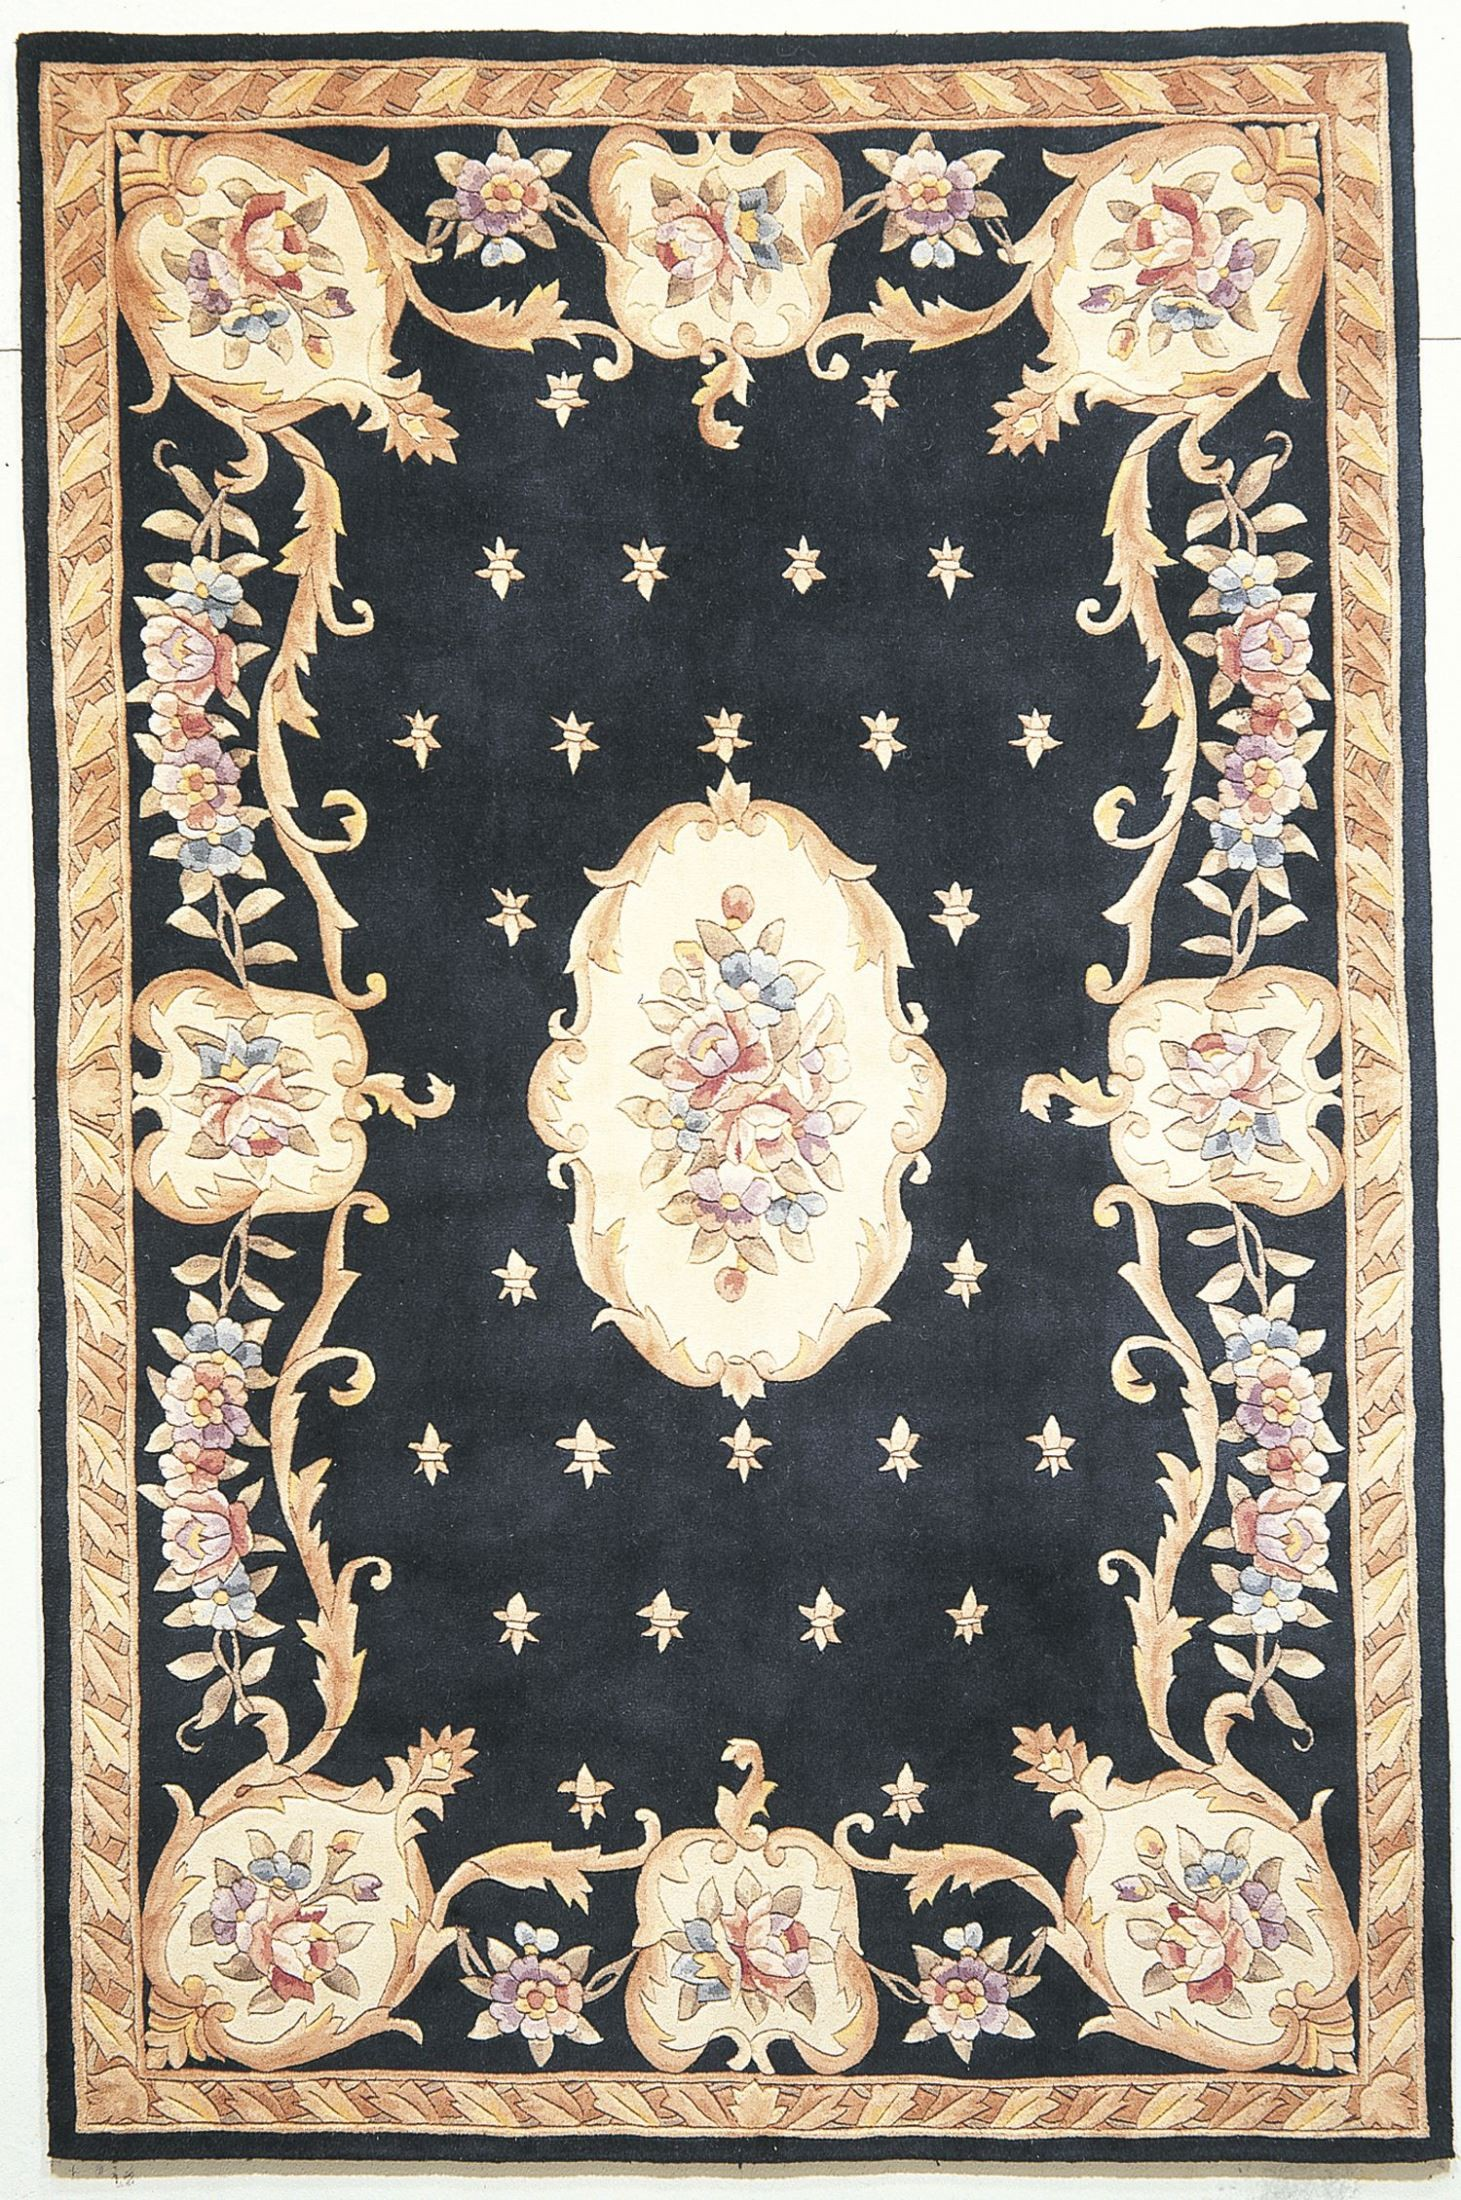 Ruby Black Fleur De Lis Aubusson 50 Quot X 30 Quot Rug From Kas